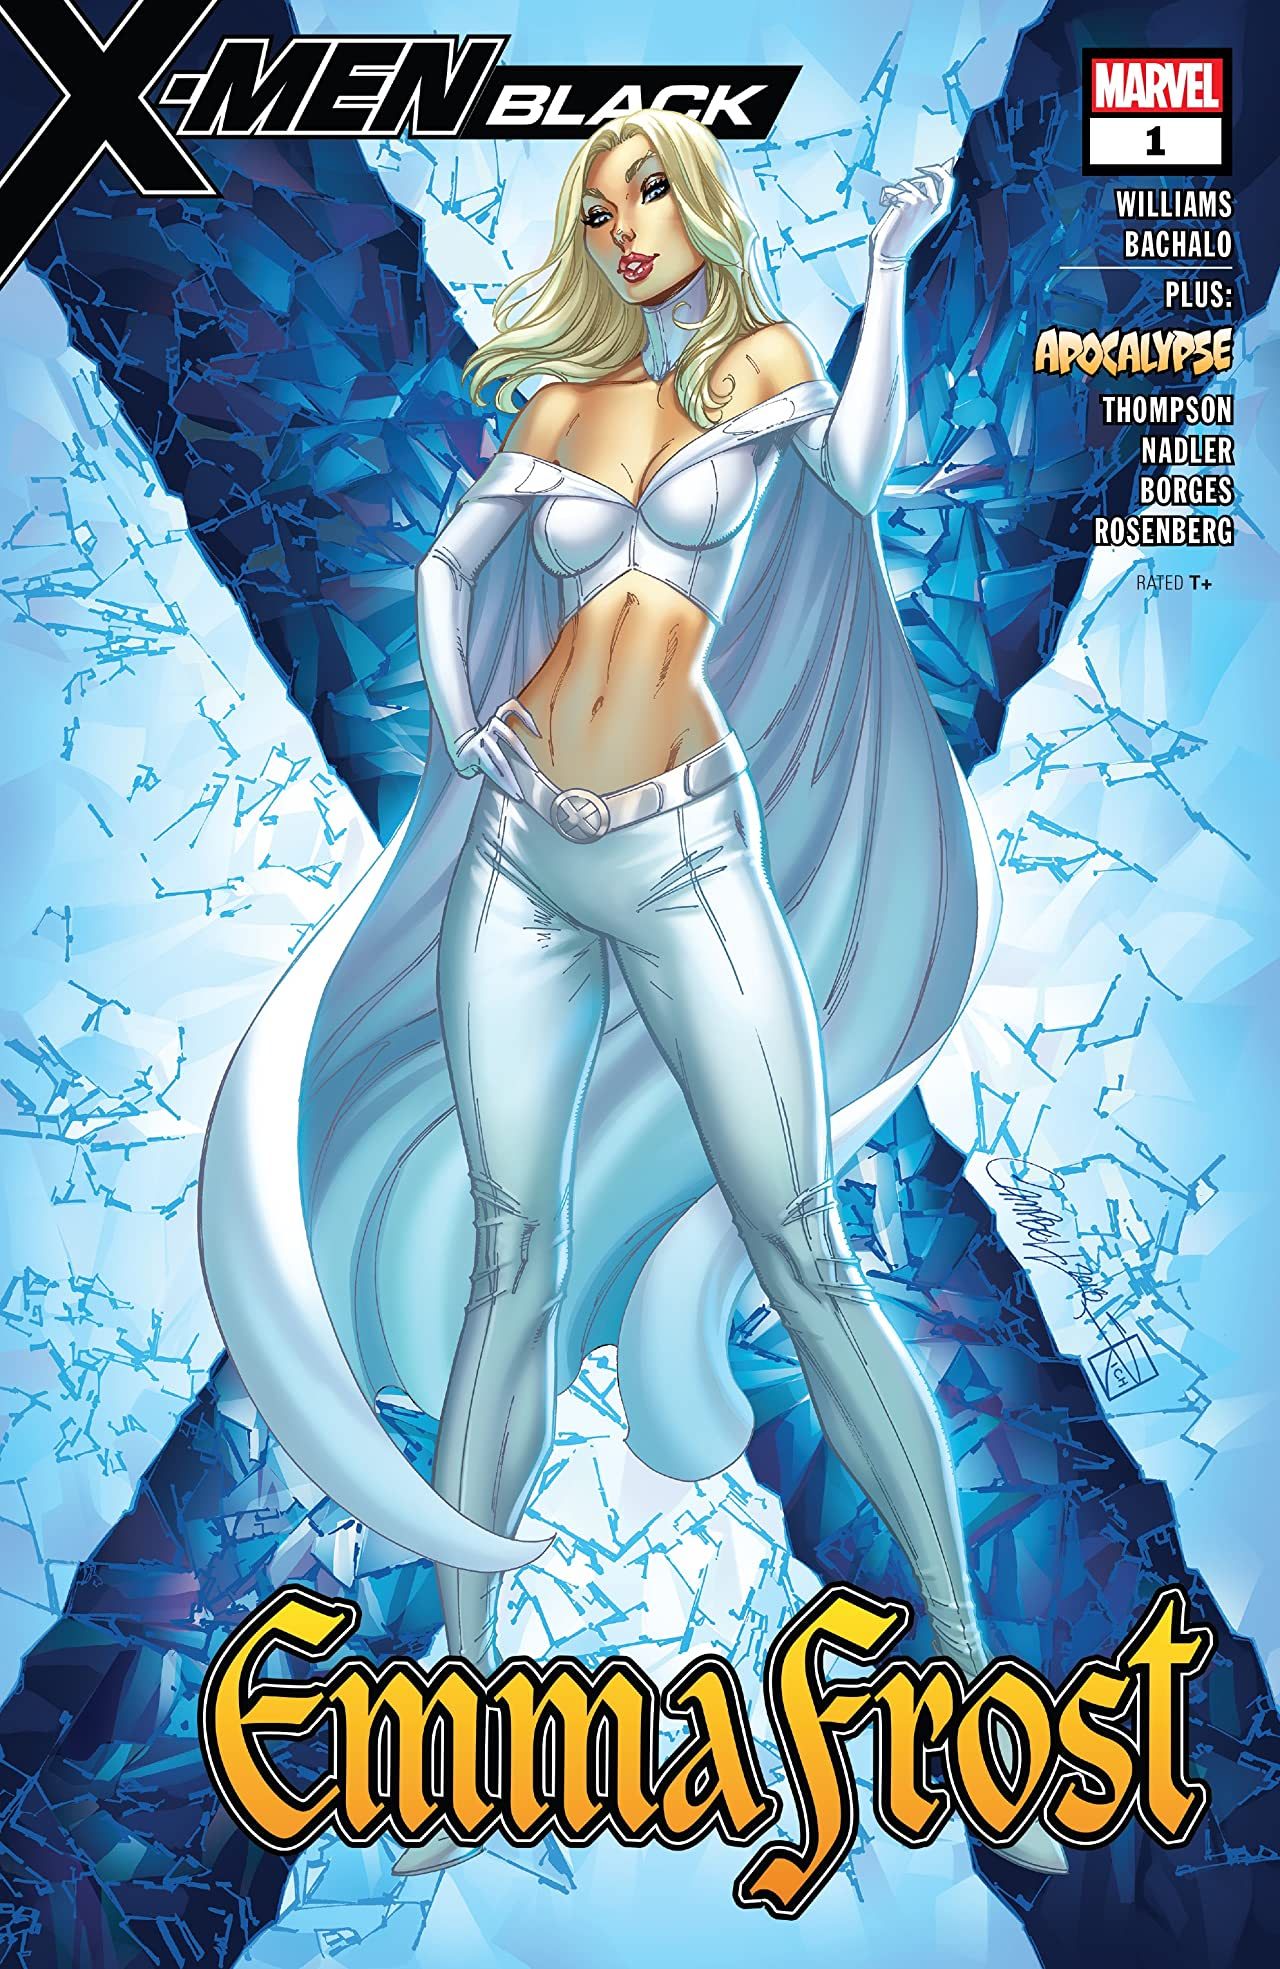 X-Men: Black - Emma Frost (2018) #1